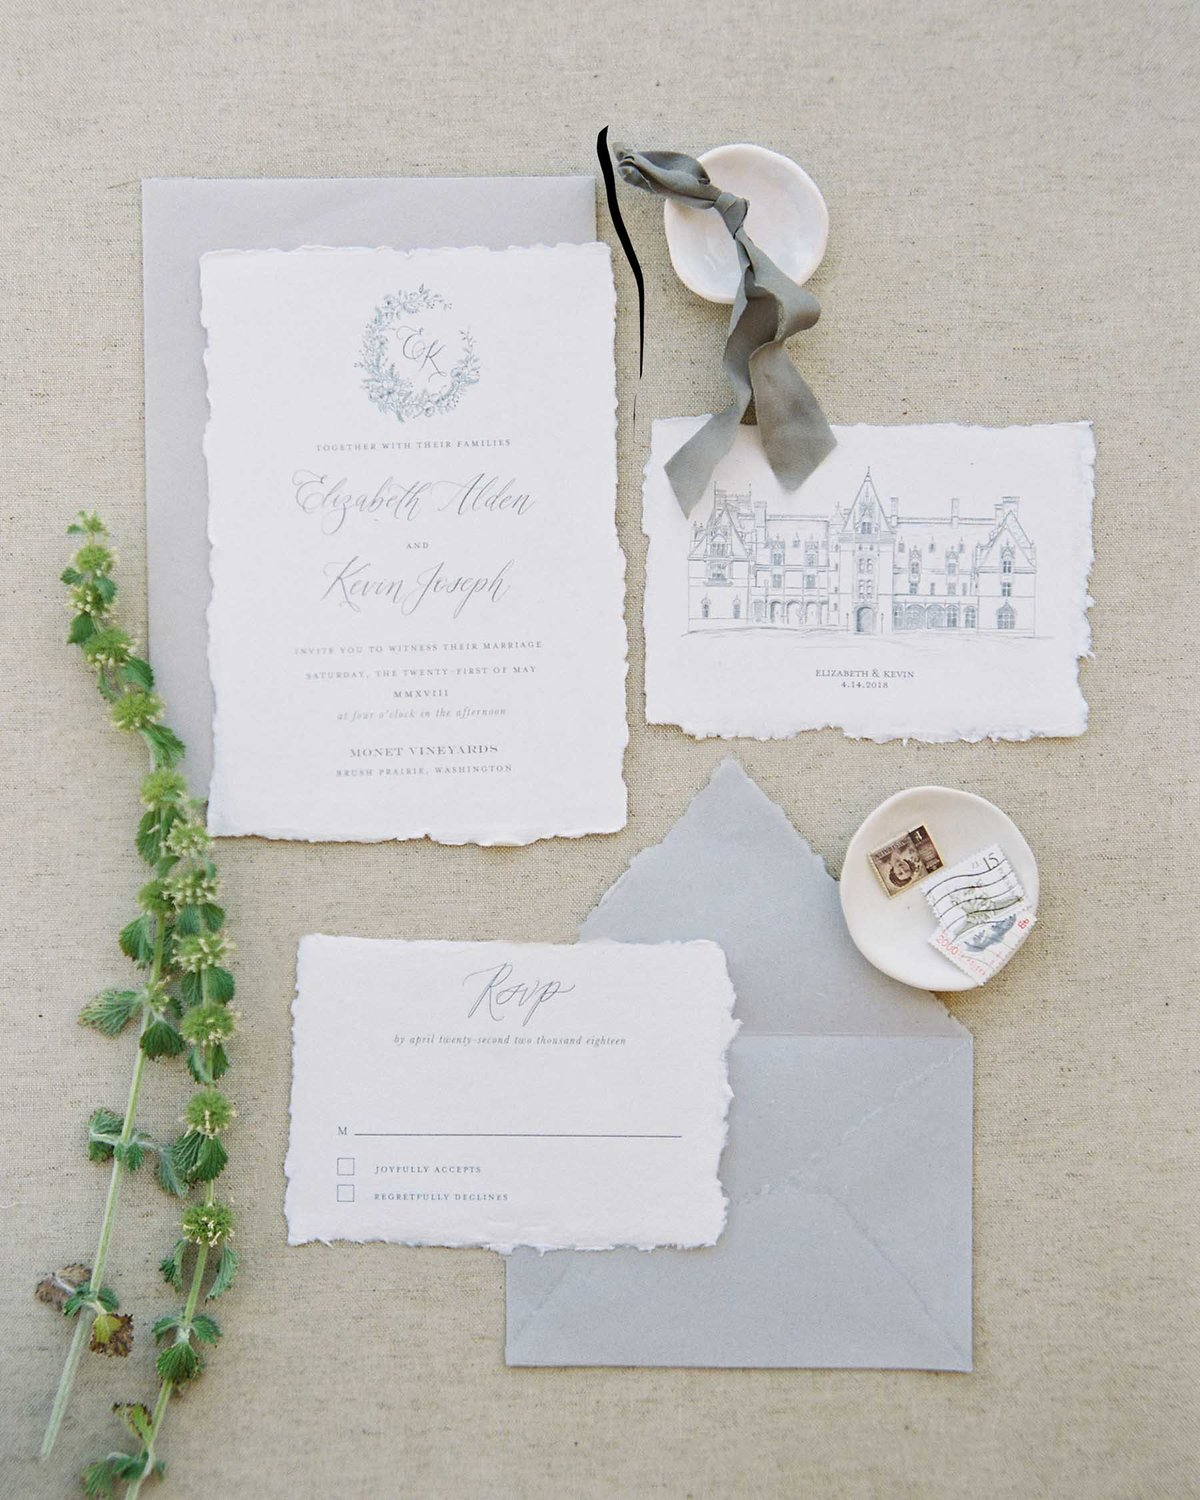 Plume & Fete fine art wedding invitations with venue illustration chateau wedding